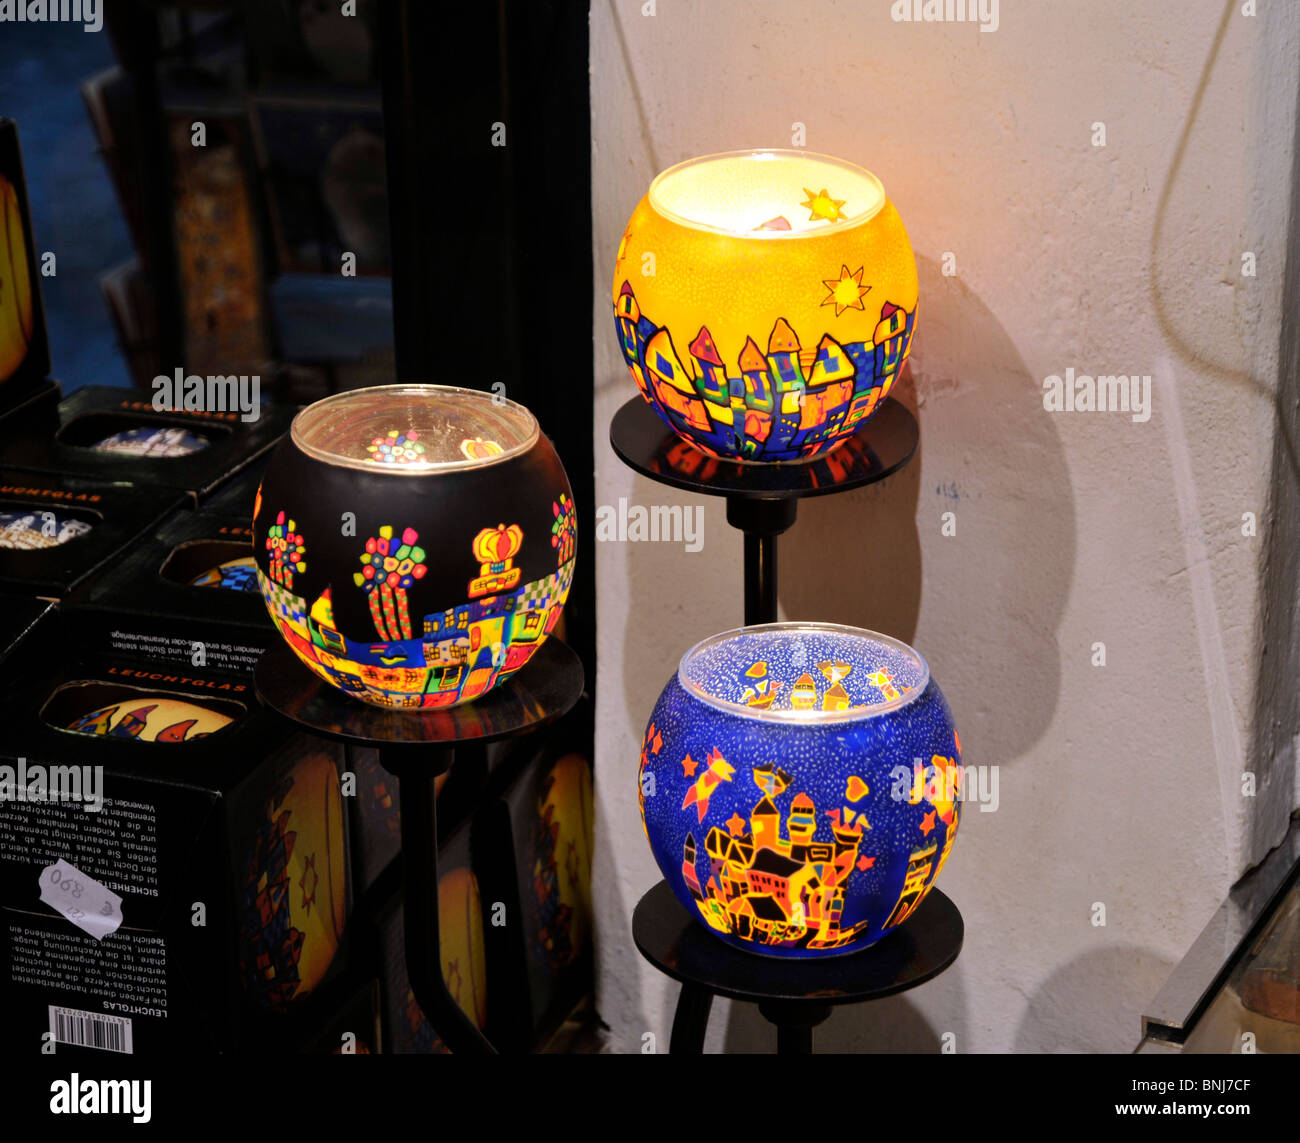 Art Lamps In The Souvenir Shop Of Hundertwasser House,Vienna,Austria,Europe